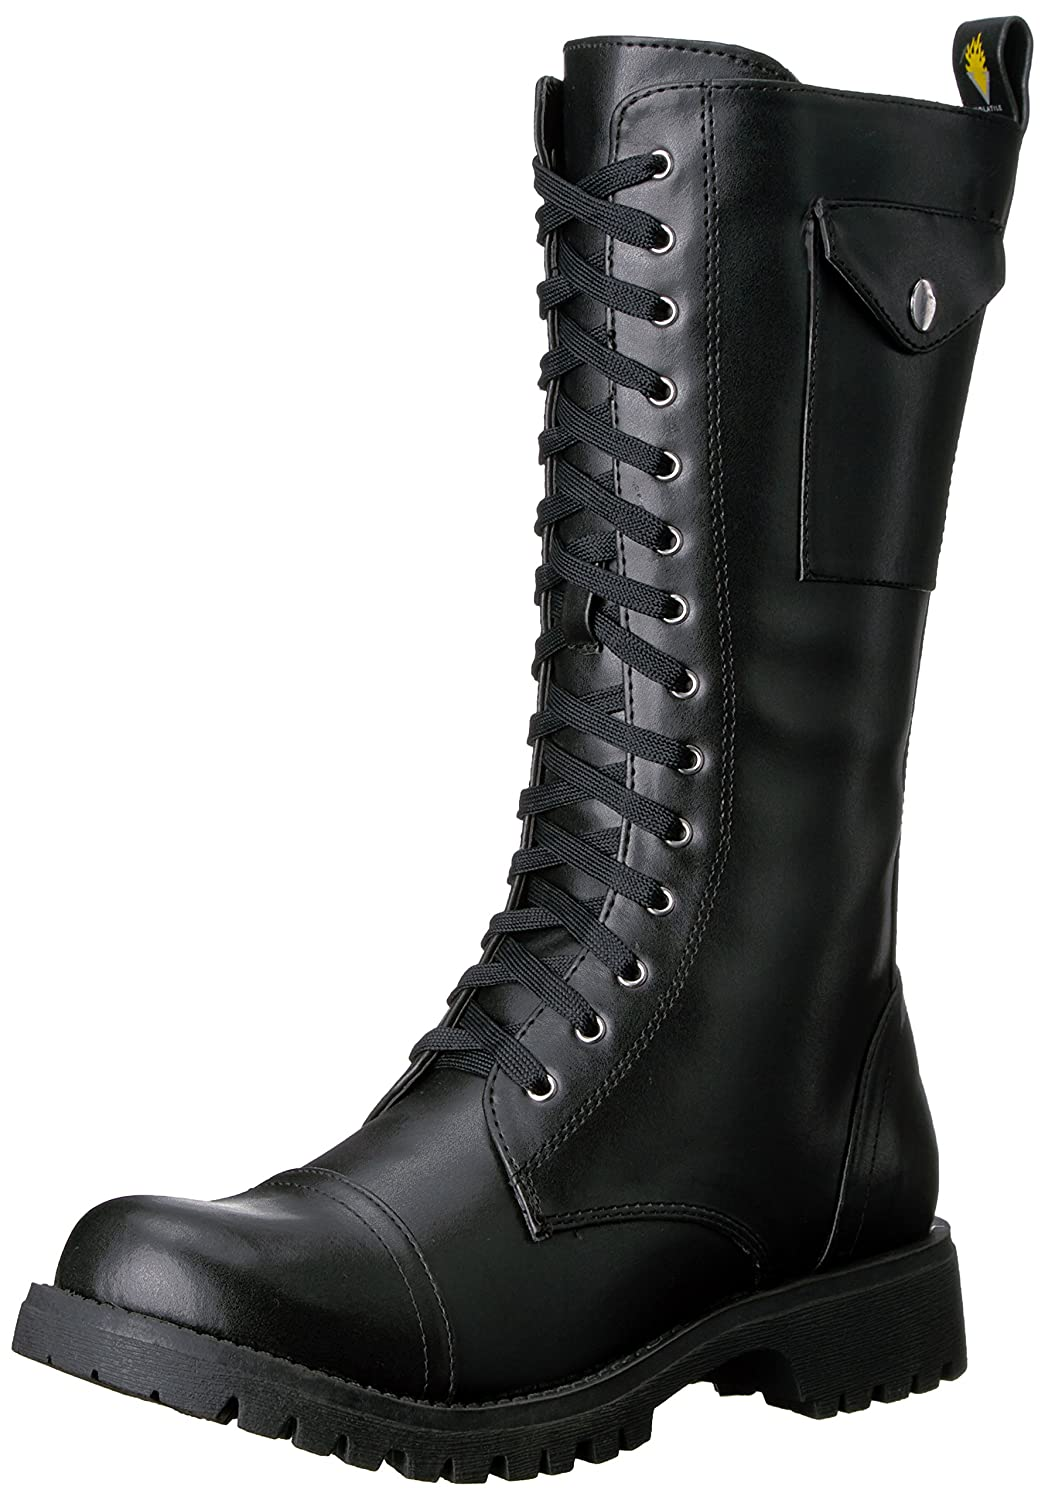 Volatile Women's Stash Combat Boot B001GTEZ8C 10 B(M) US|Black